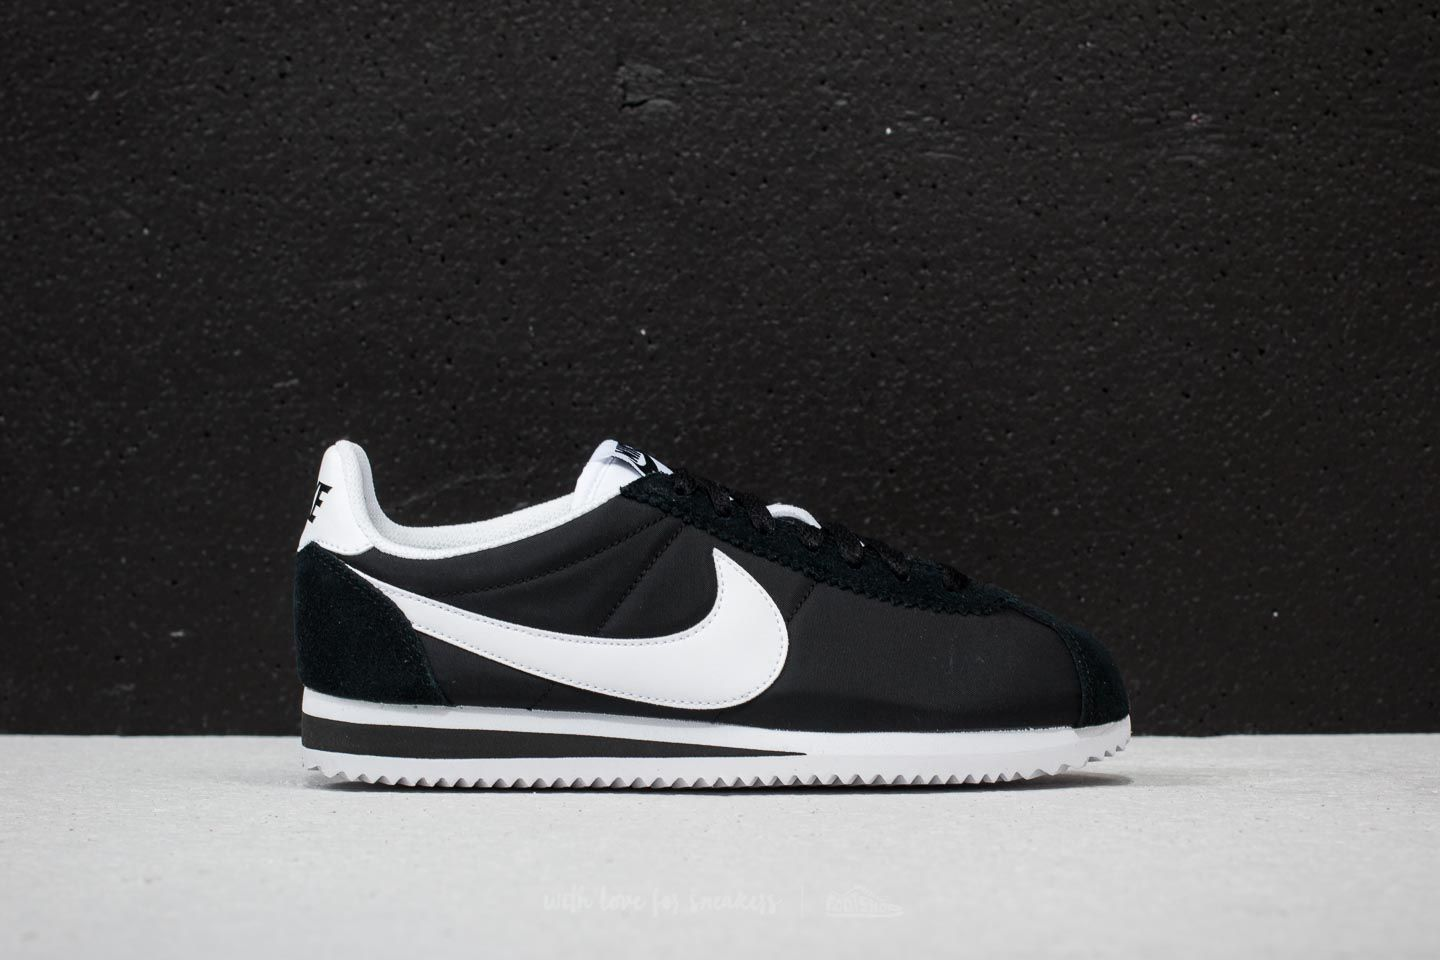 reputable site 9a7b4 301df Nike Wmns Classic Cortez Nylon Black White at a great price £70 buy at